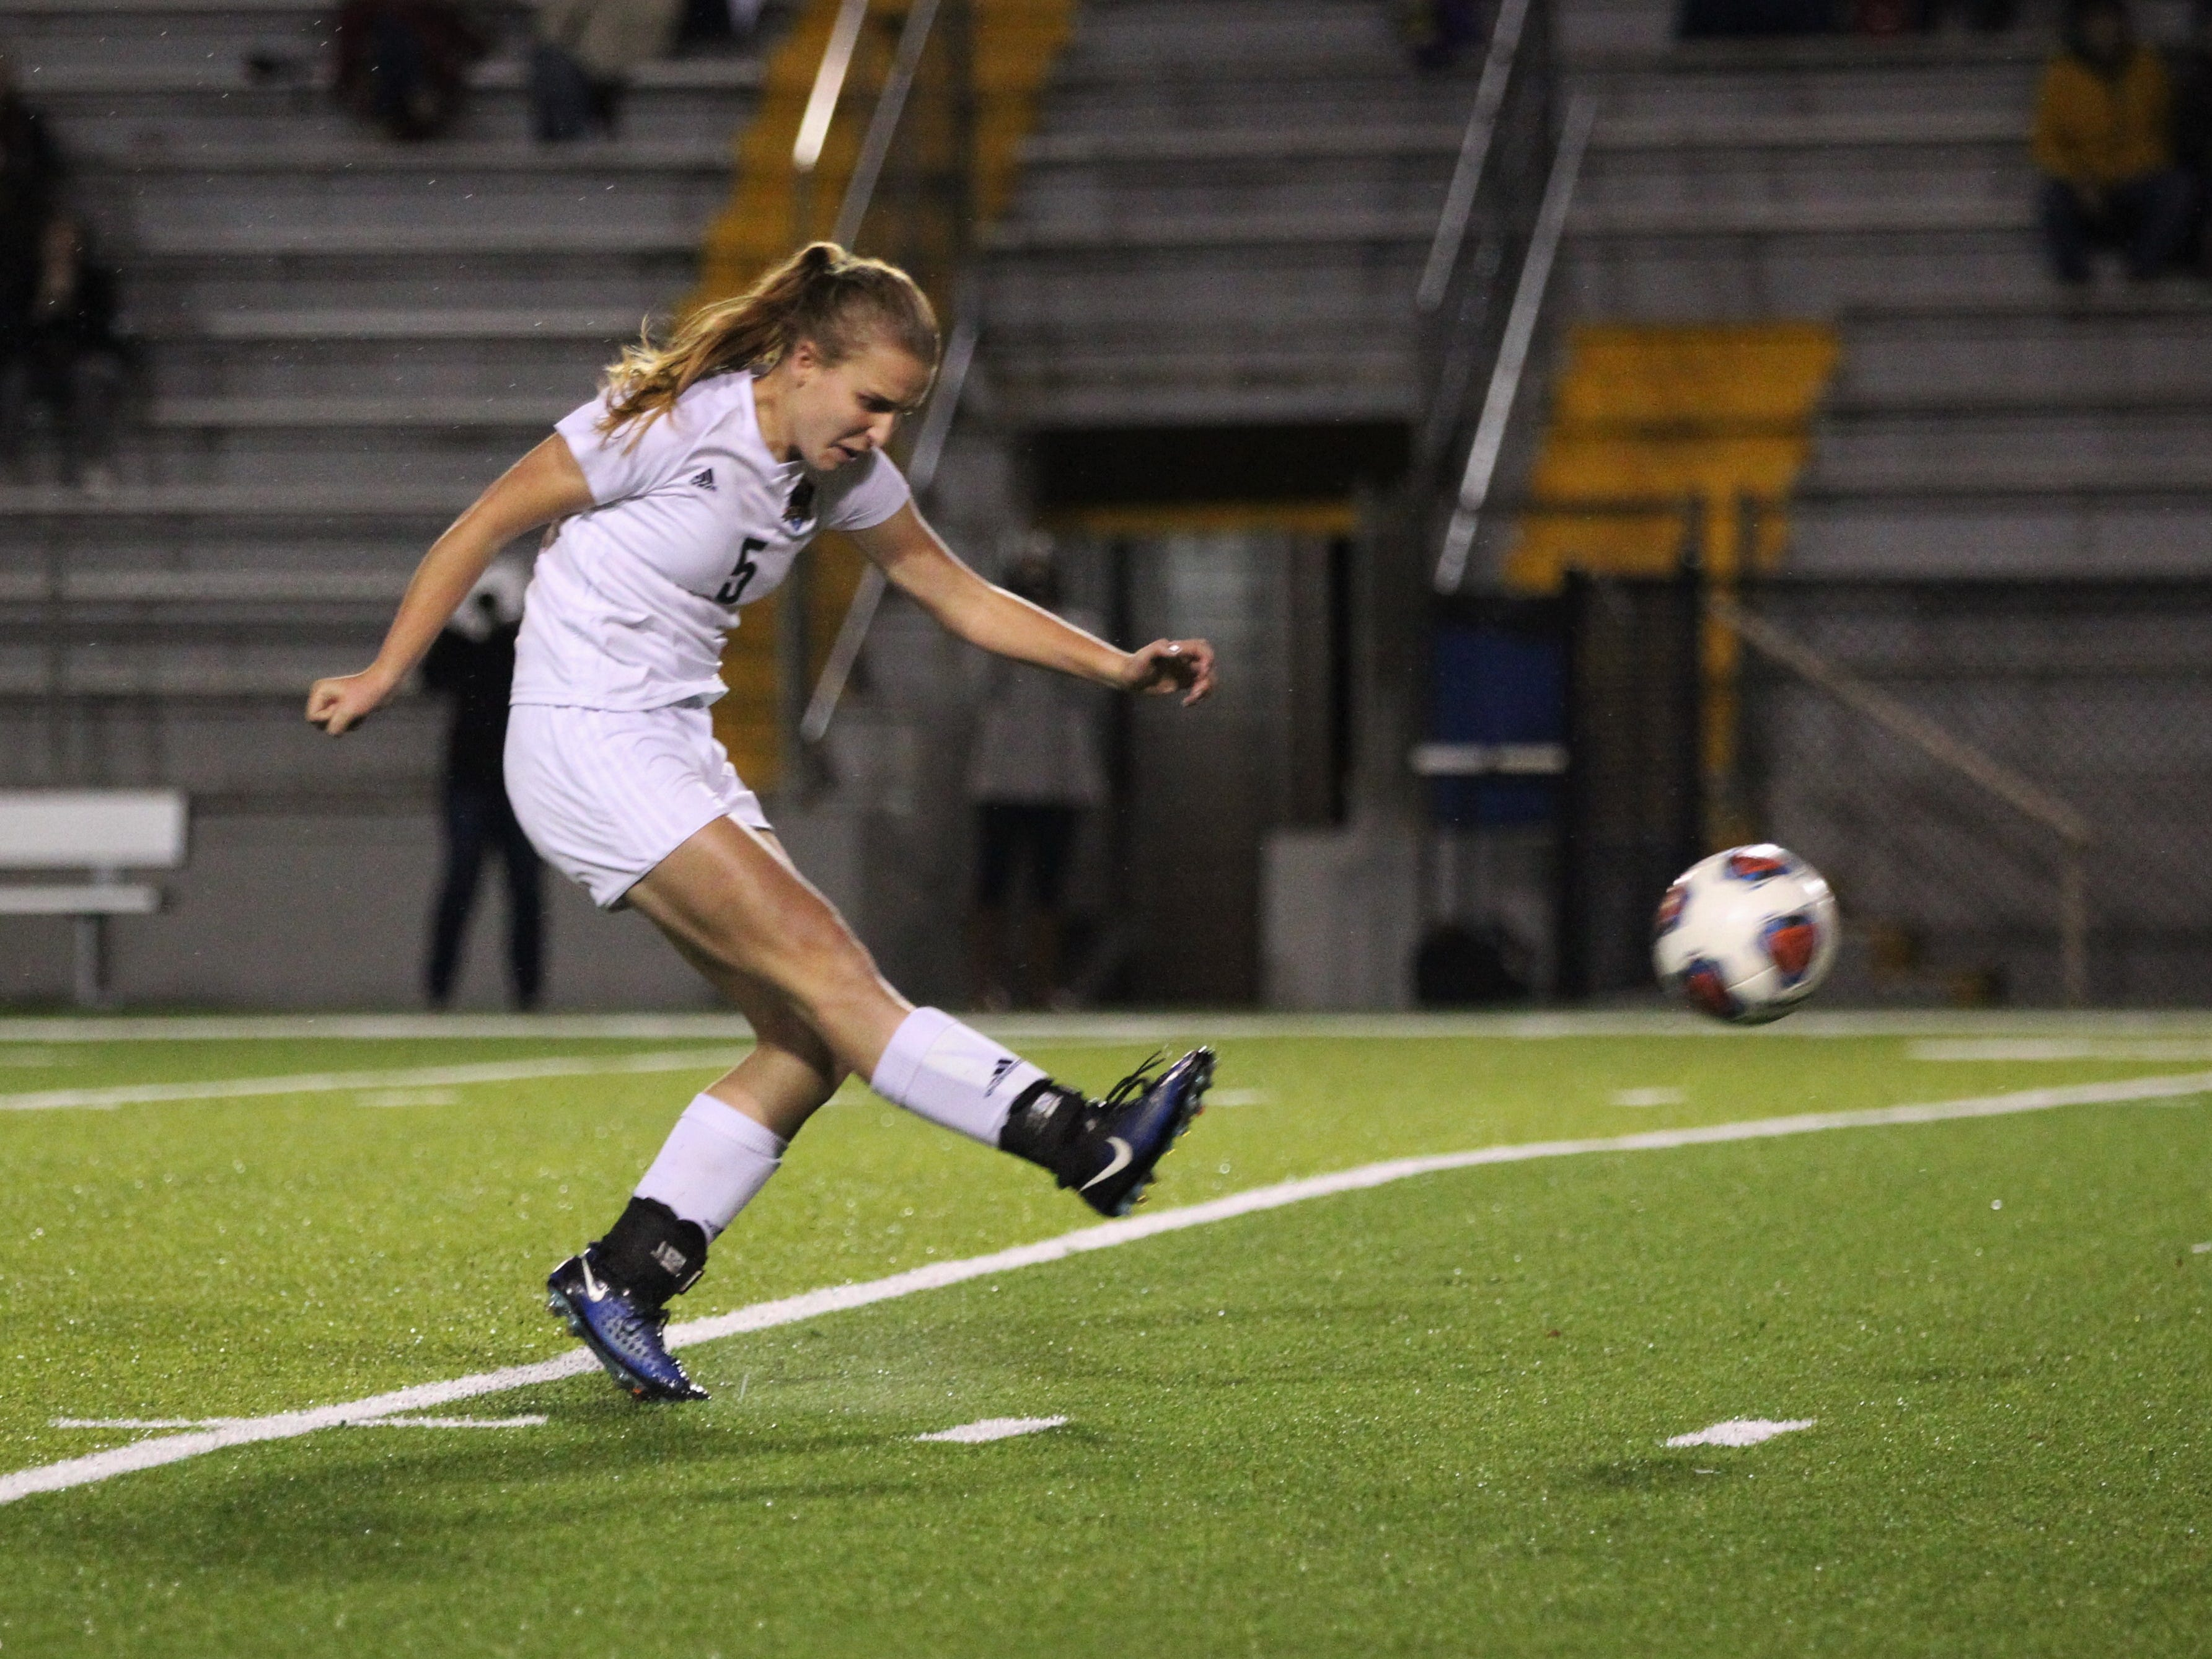 Lincoln senior Sarah Wnuk takes a free kick that would hit the crossbar as Leon's girls soccer team beat Lincoln 2-1 in the District 2-4A championship at Gene Cox Stadium on Feb. 1, 2019.